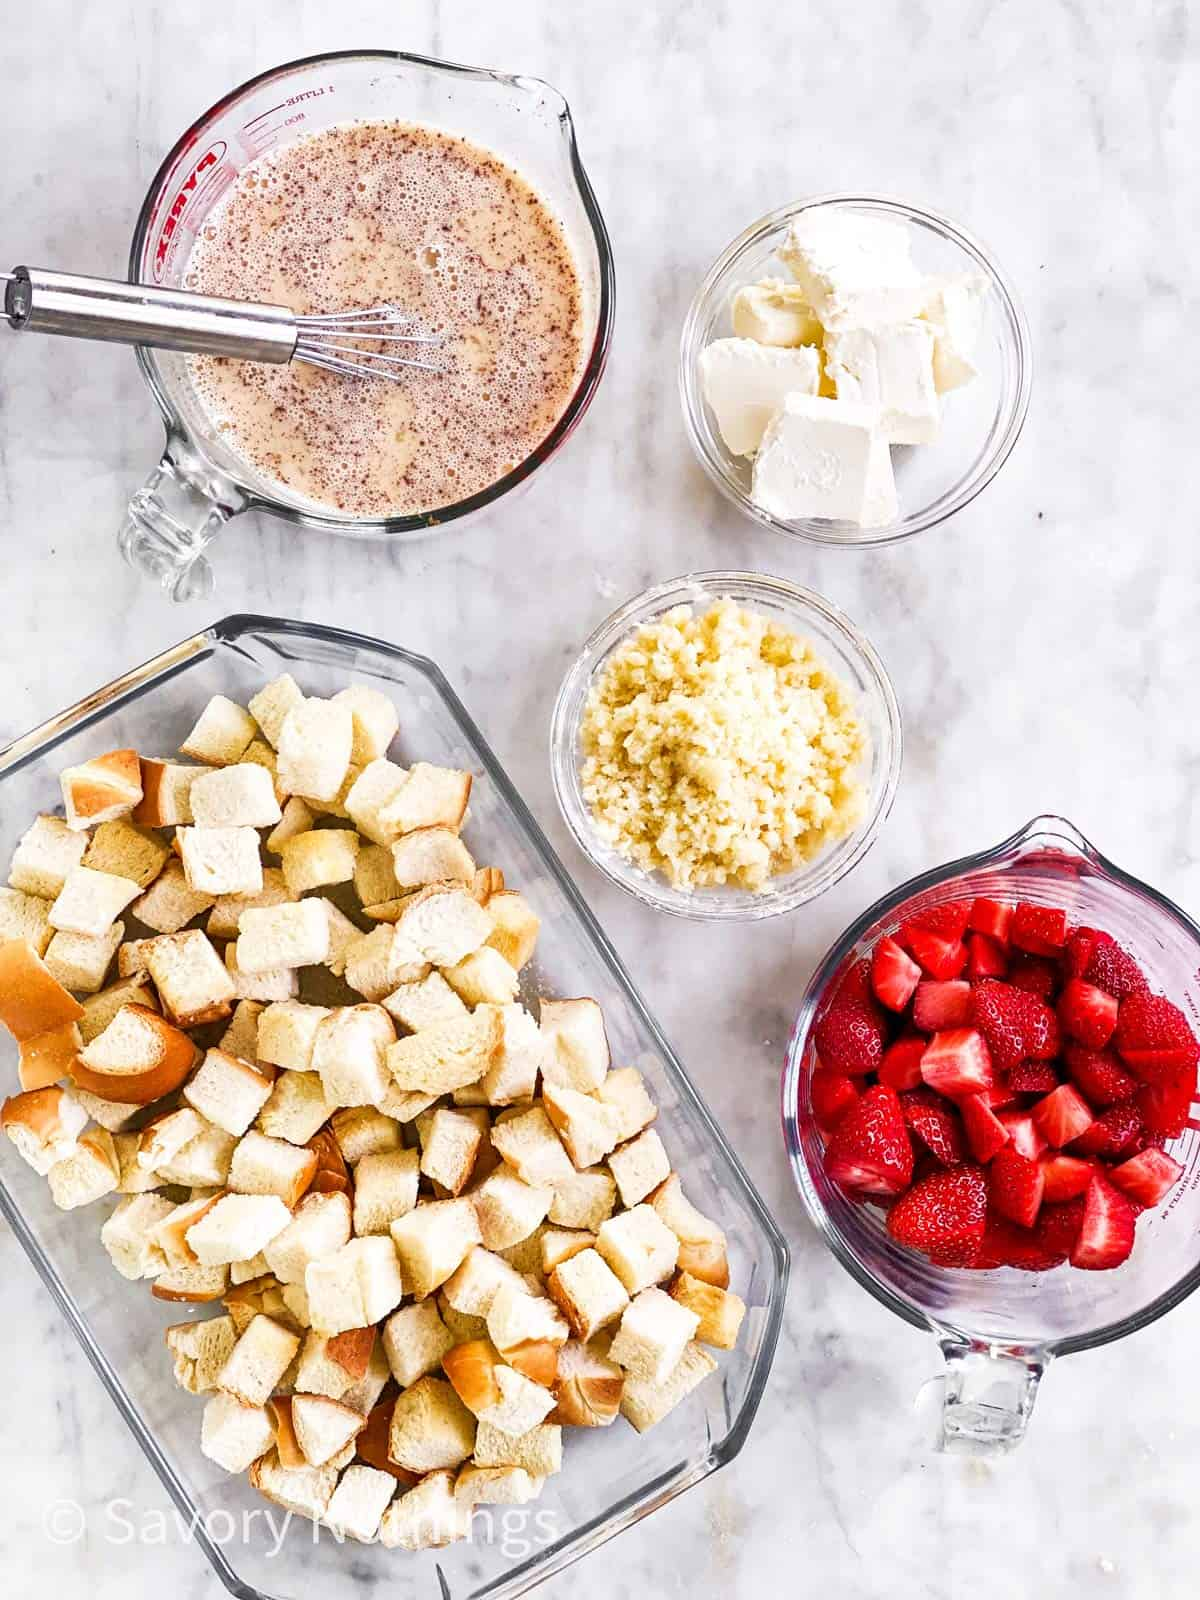 assembled ingredients for strawberry French toast casserole on marble surface